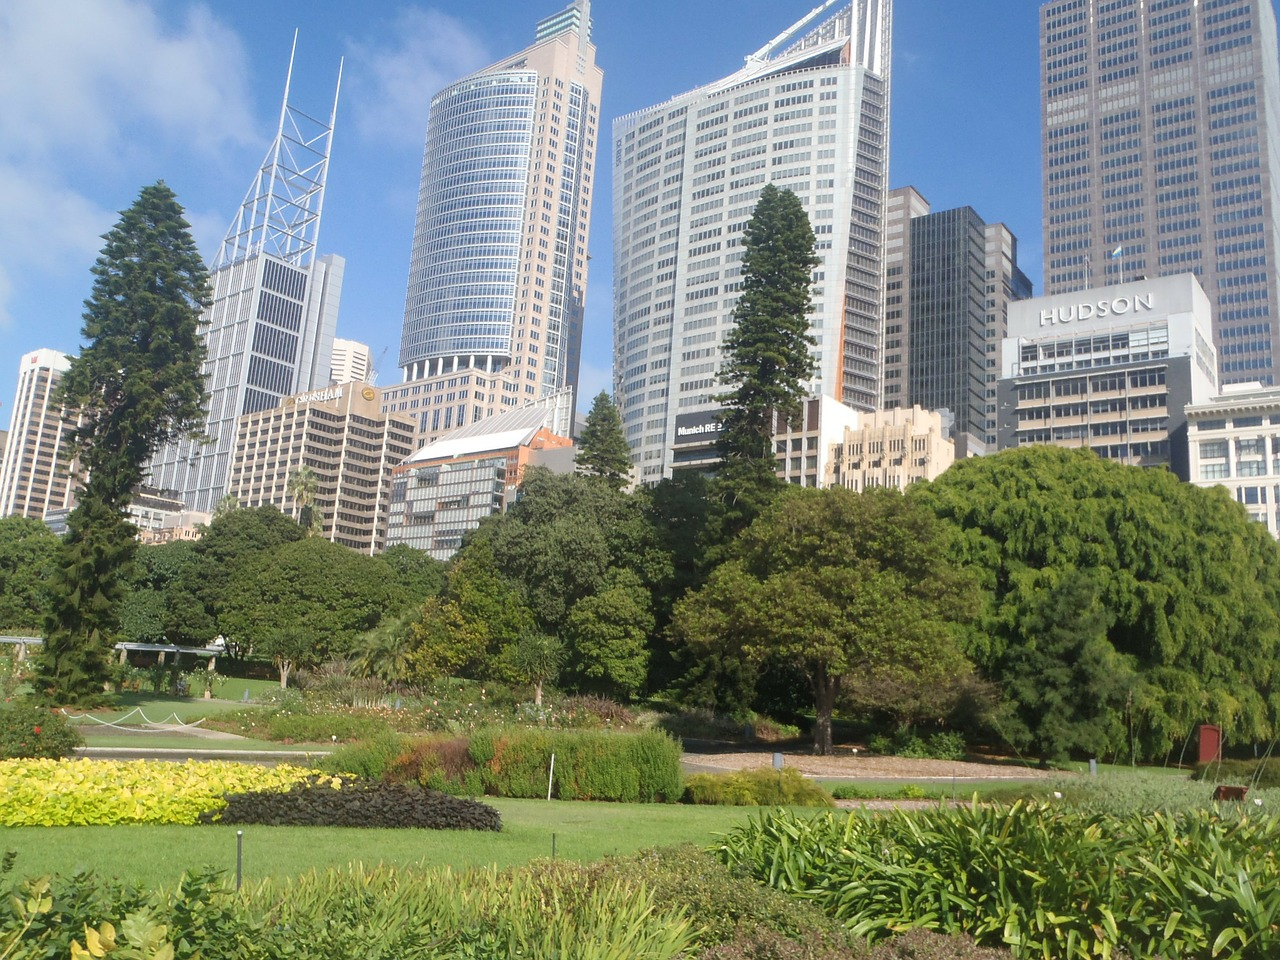 sydney australia cities free photo